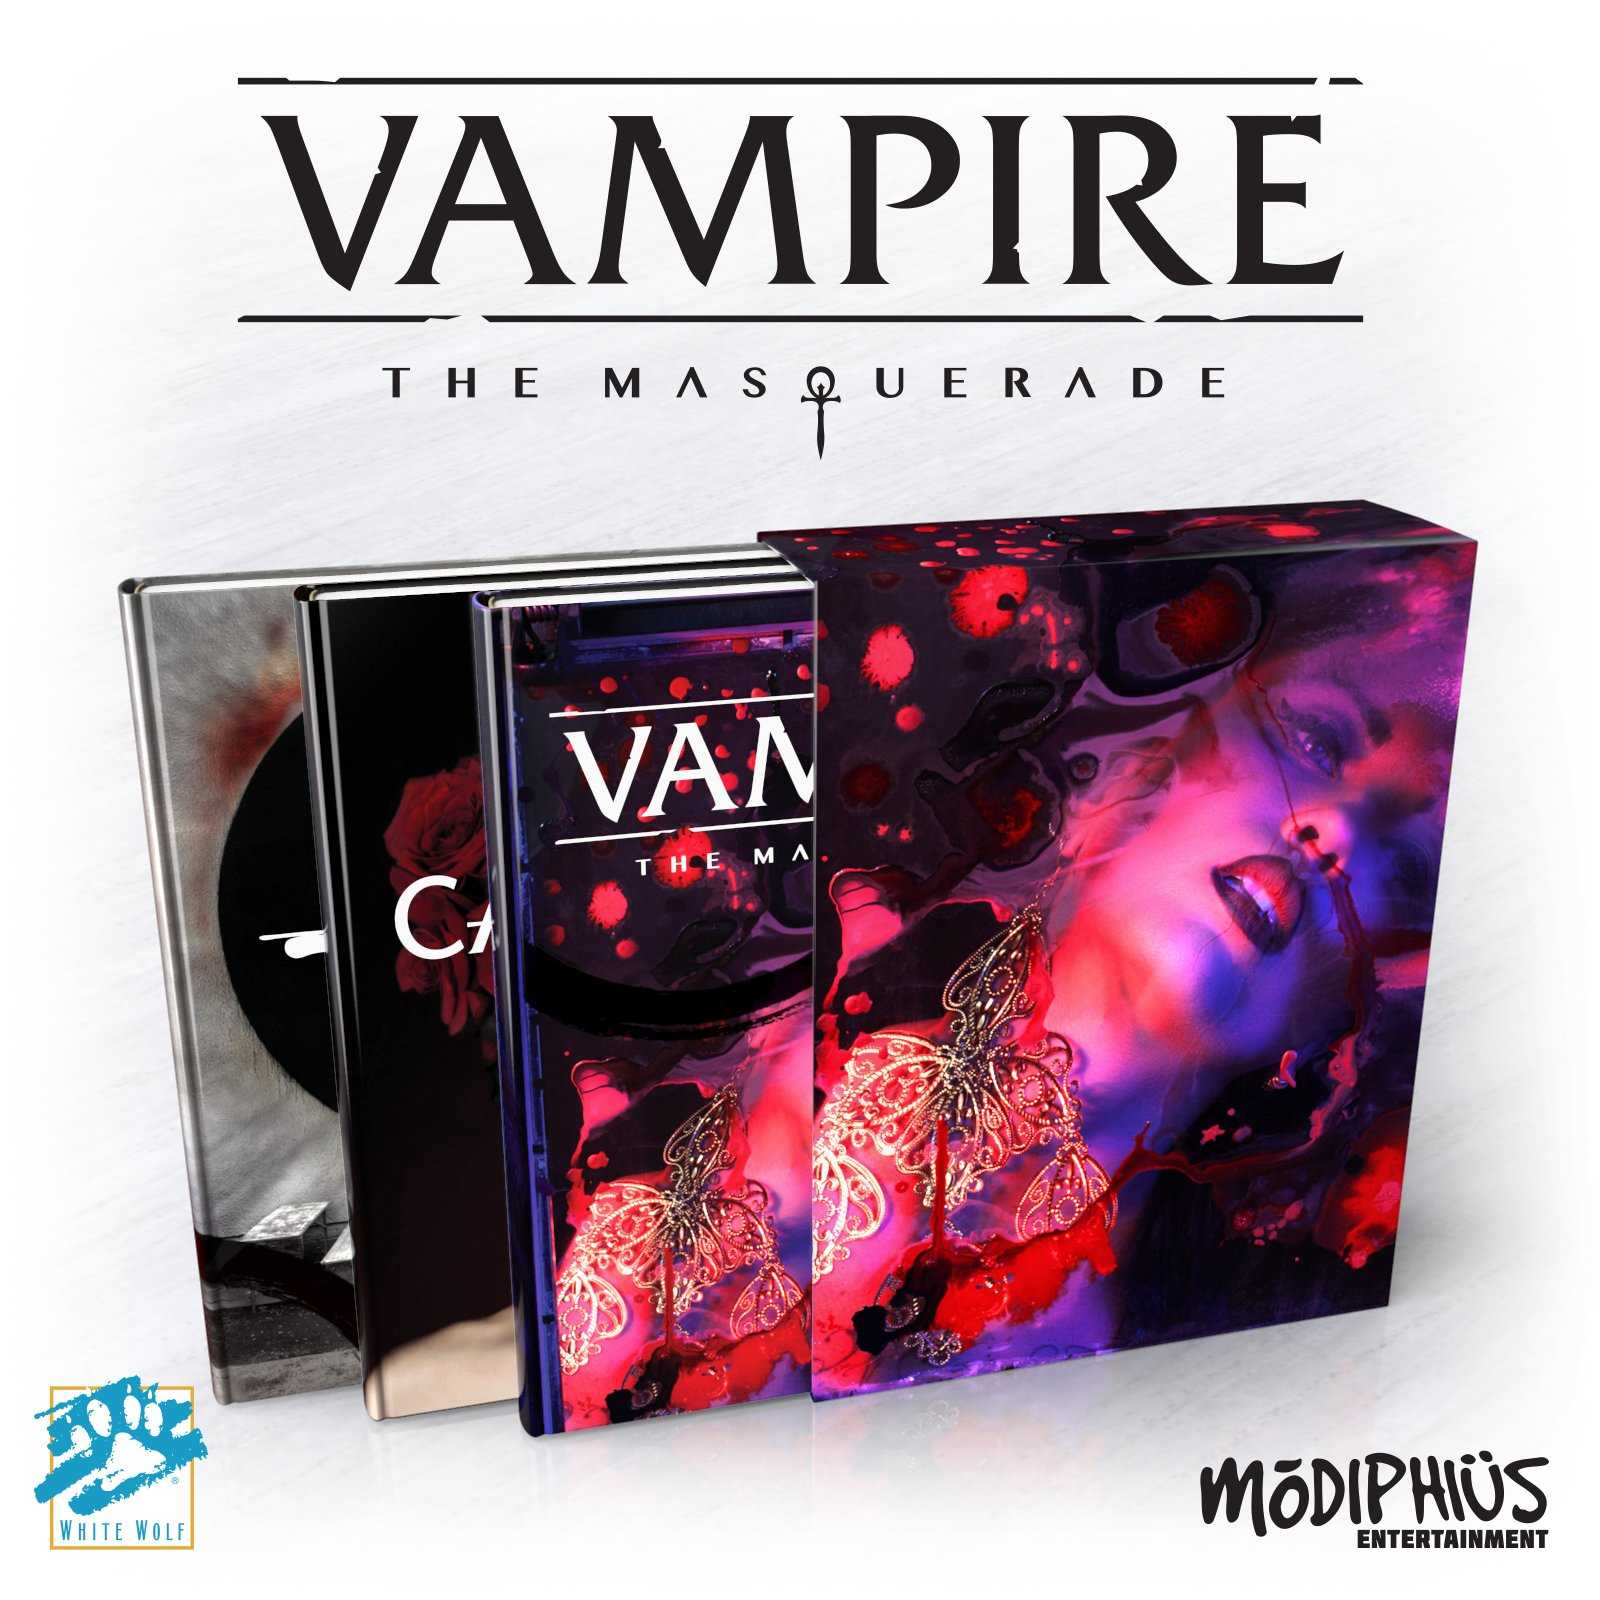 Vampire: the Masquerade (5th edition) - Slipcase Set